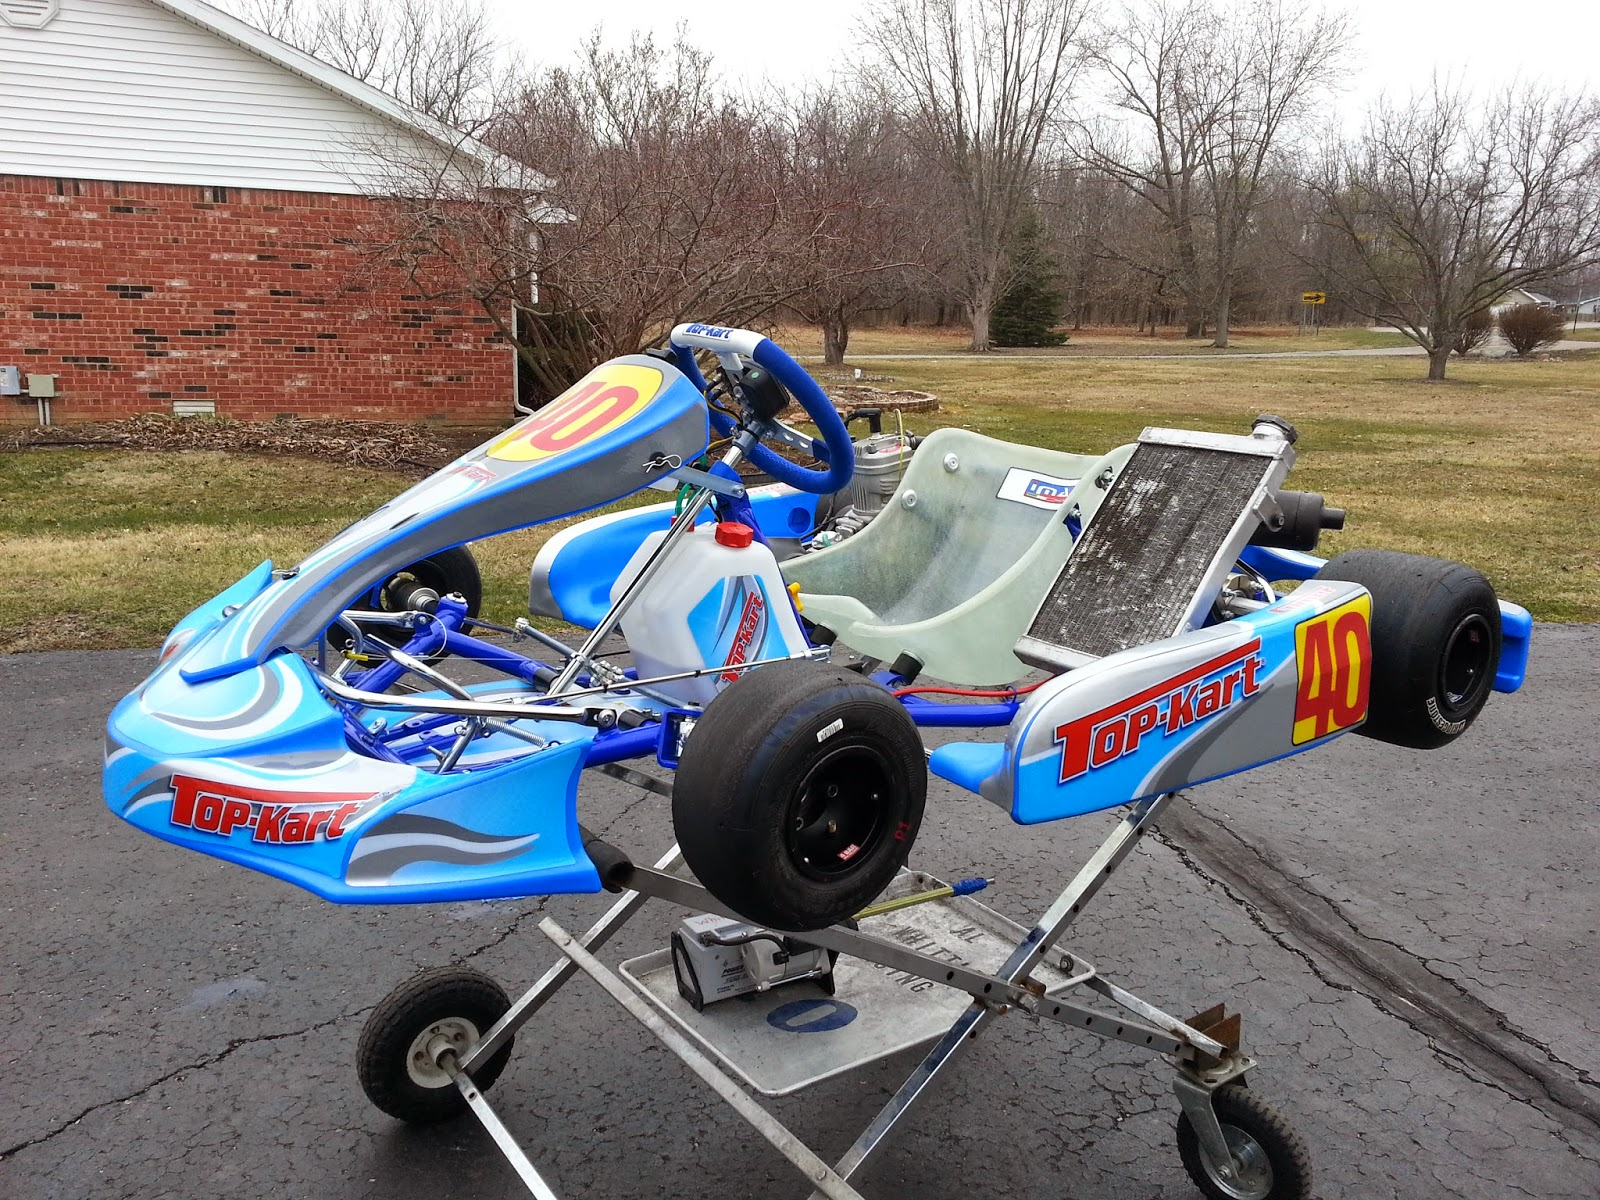 2015 Top Kart Typhoon Chassis